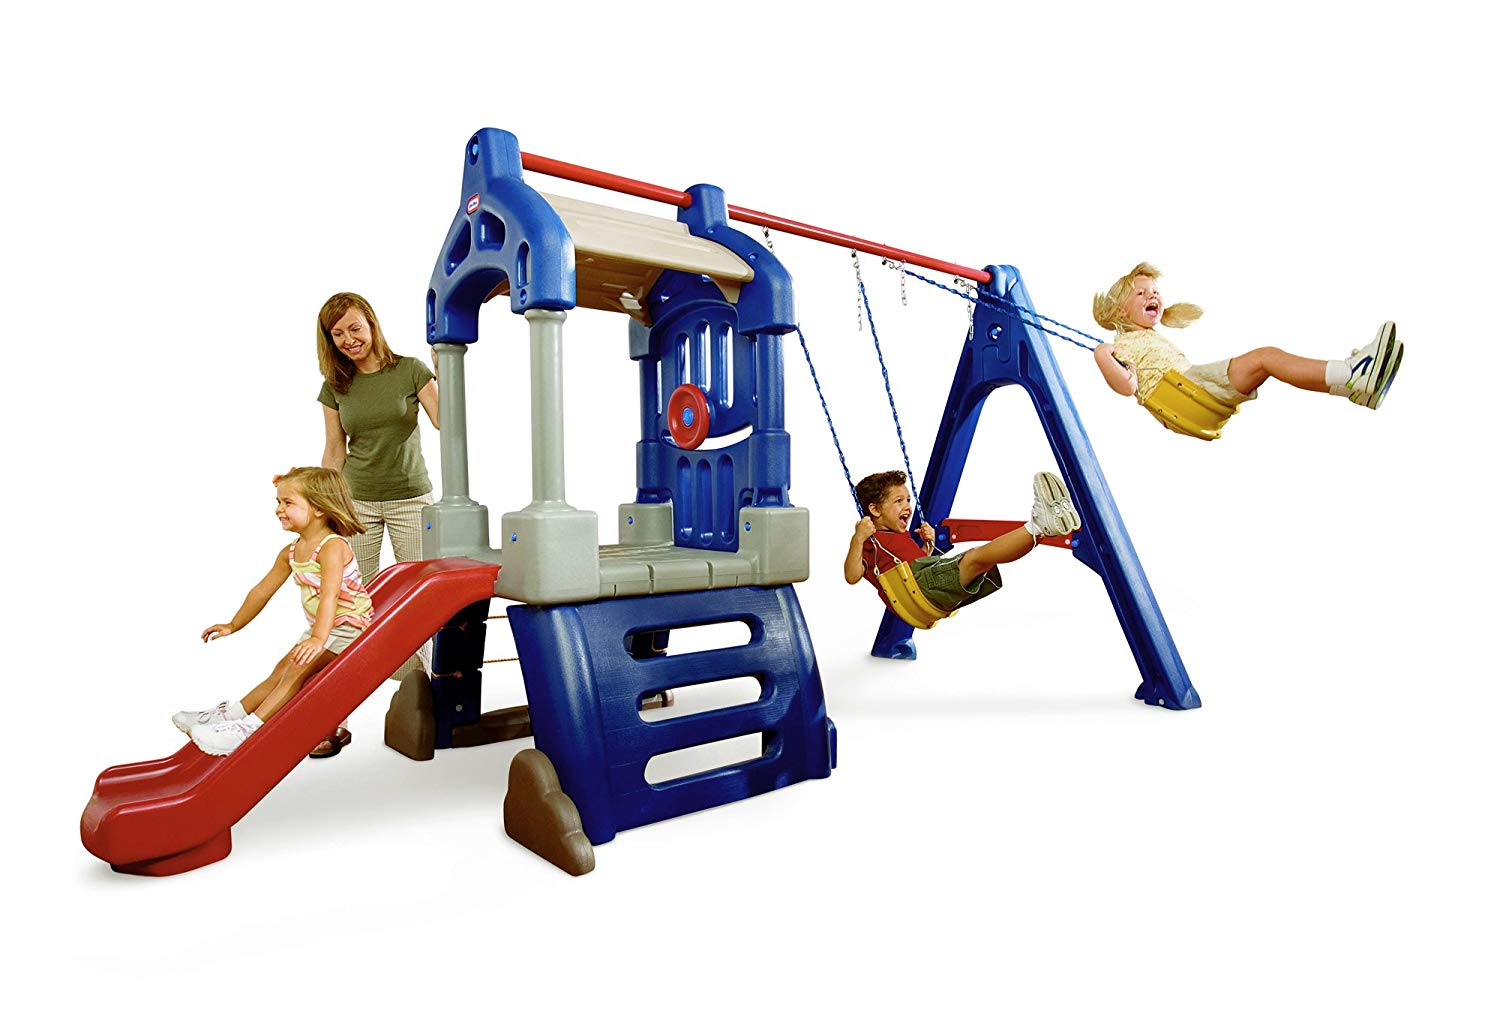 The Little Tikes Clubhouse Swing Set